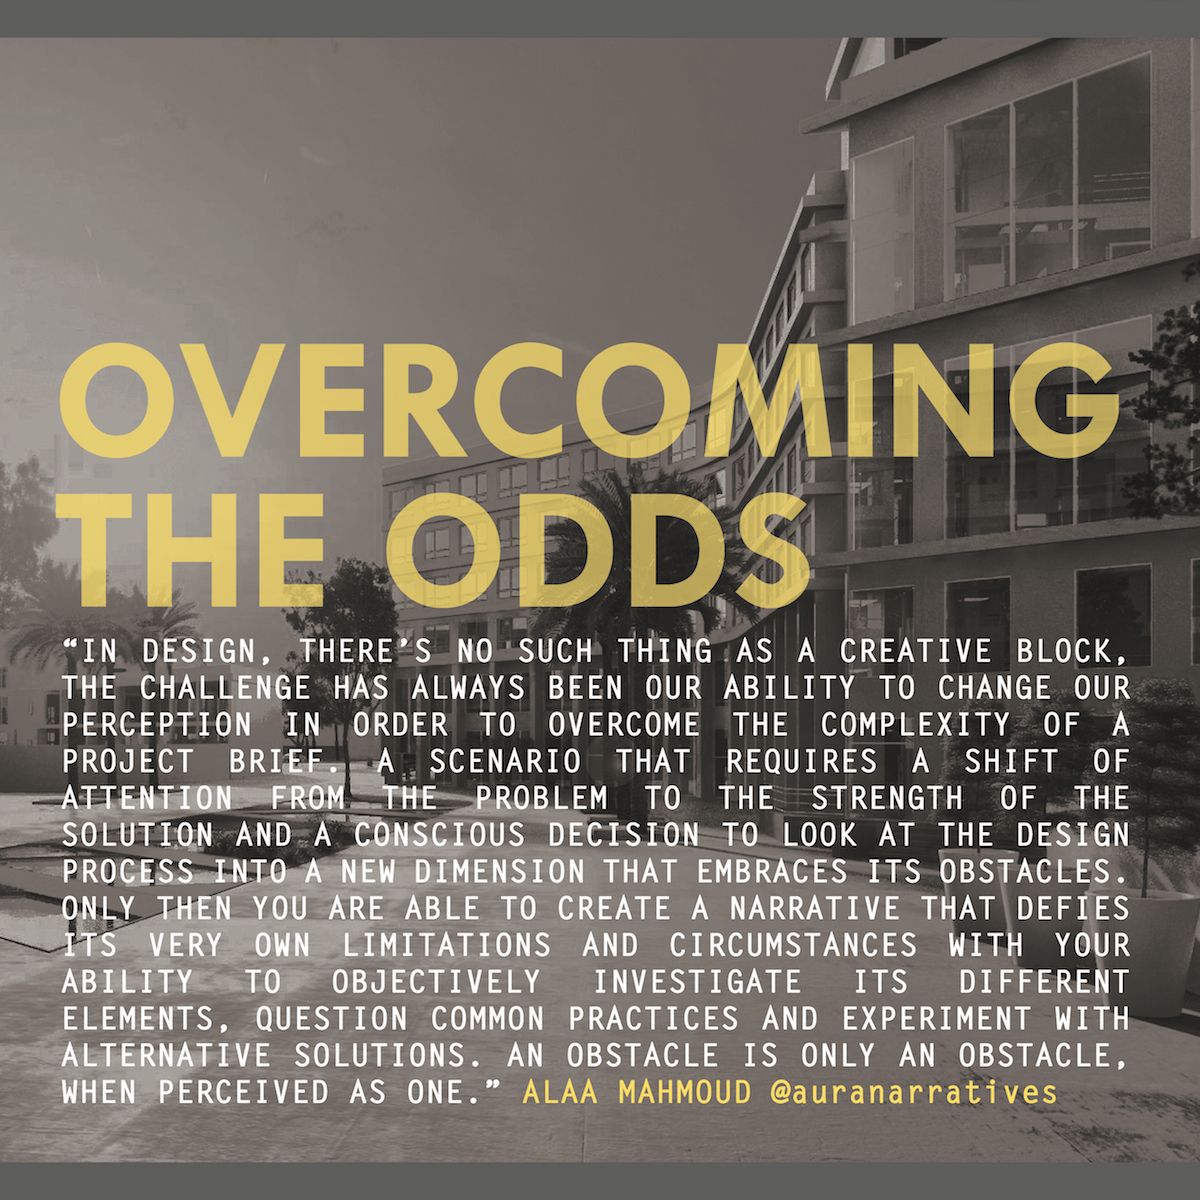 POSTS_All_4- overcoming the odds.jpg